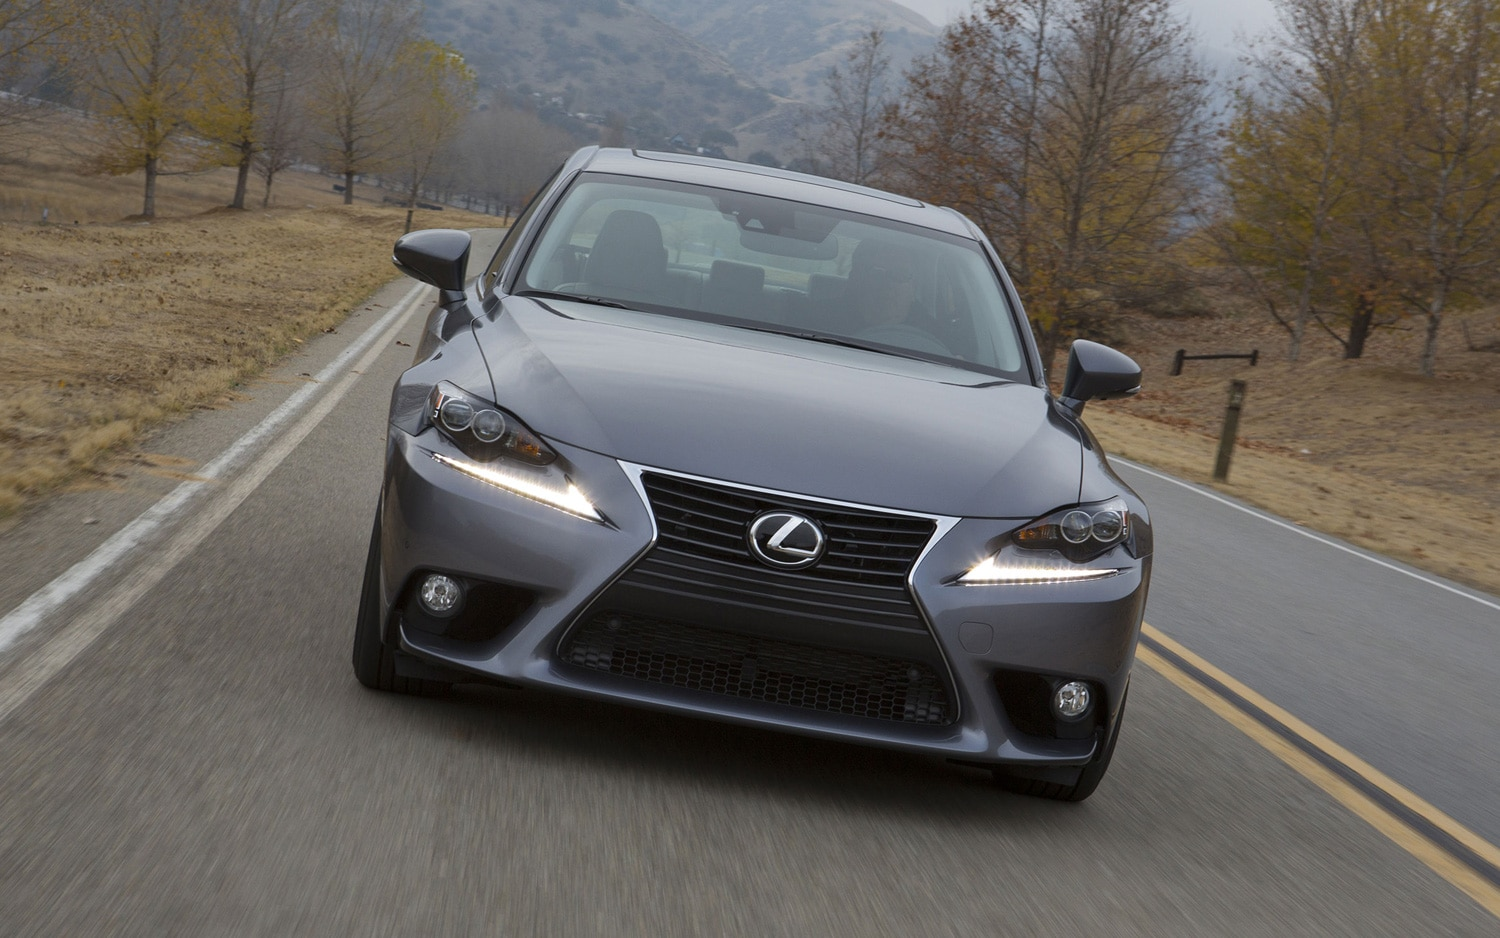 2014 Lexus IS350 Front1